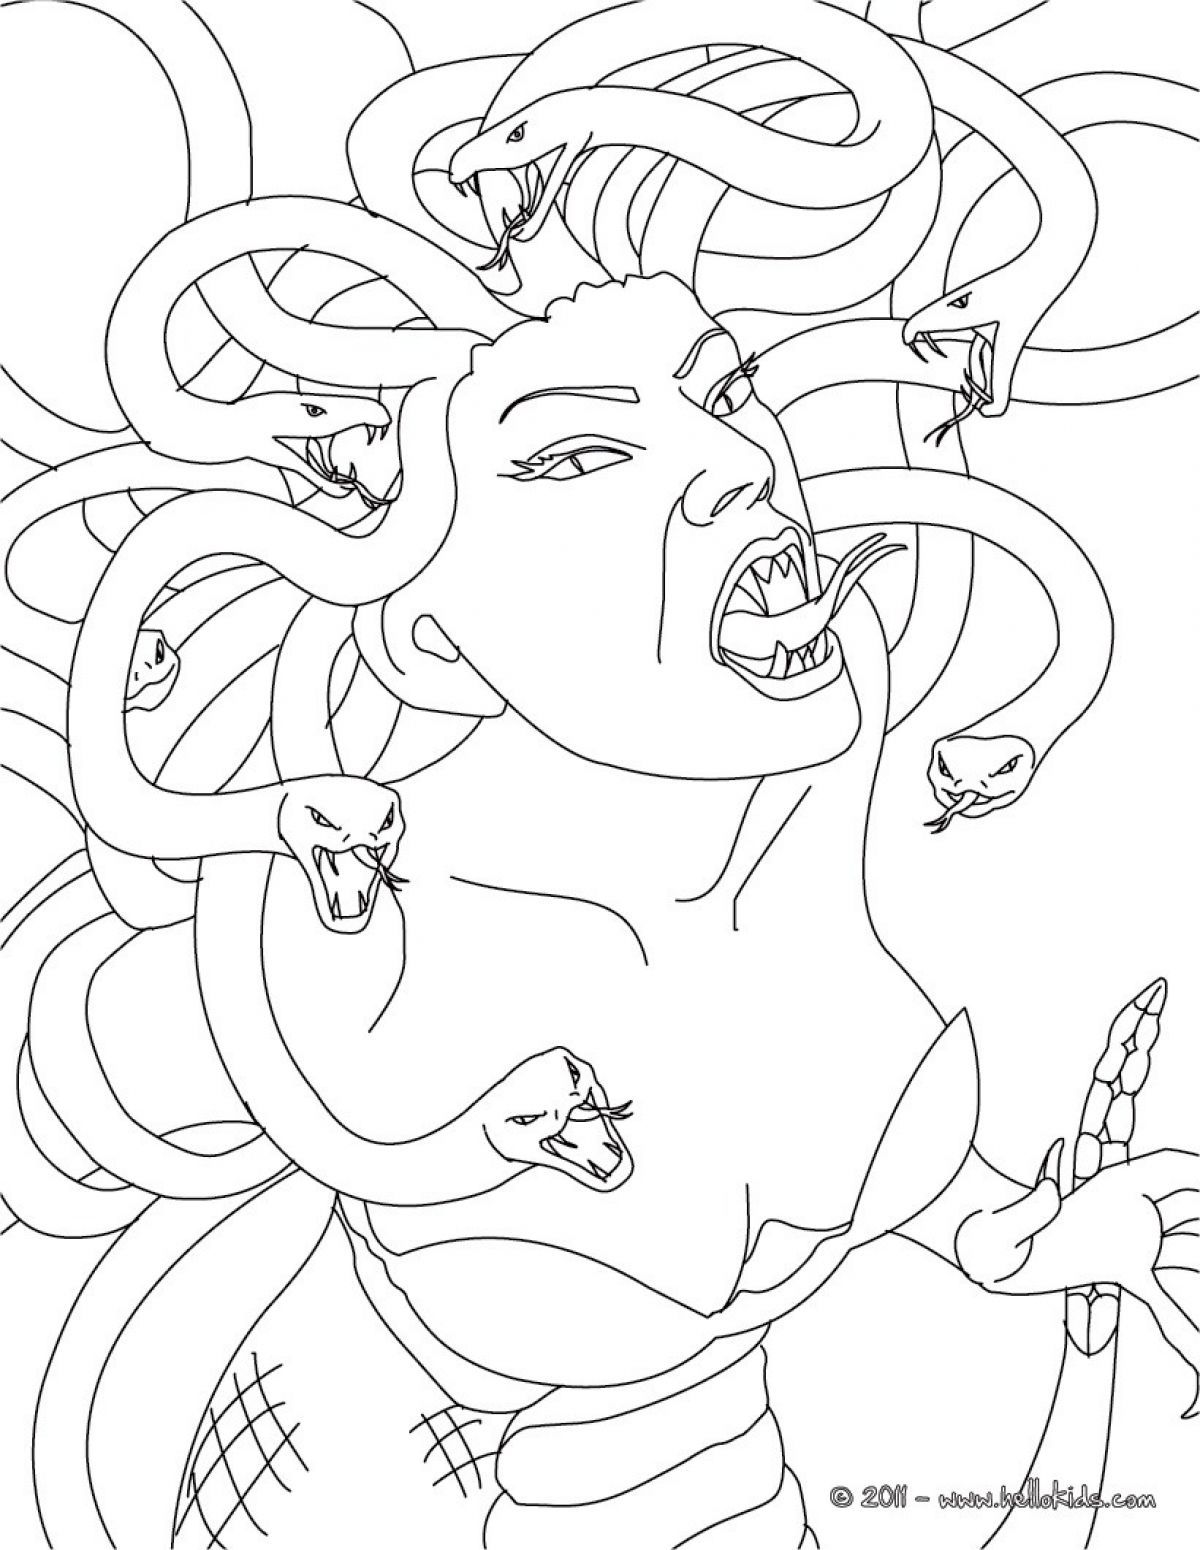 Greek Myth Coloring Pages at GetDrawings.com | Free for personal use ...